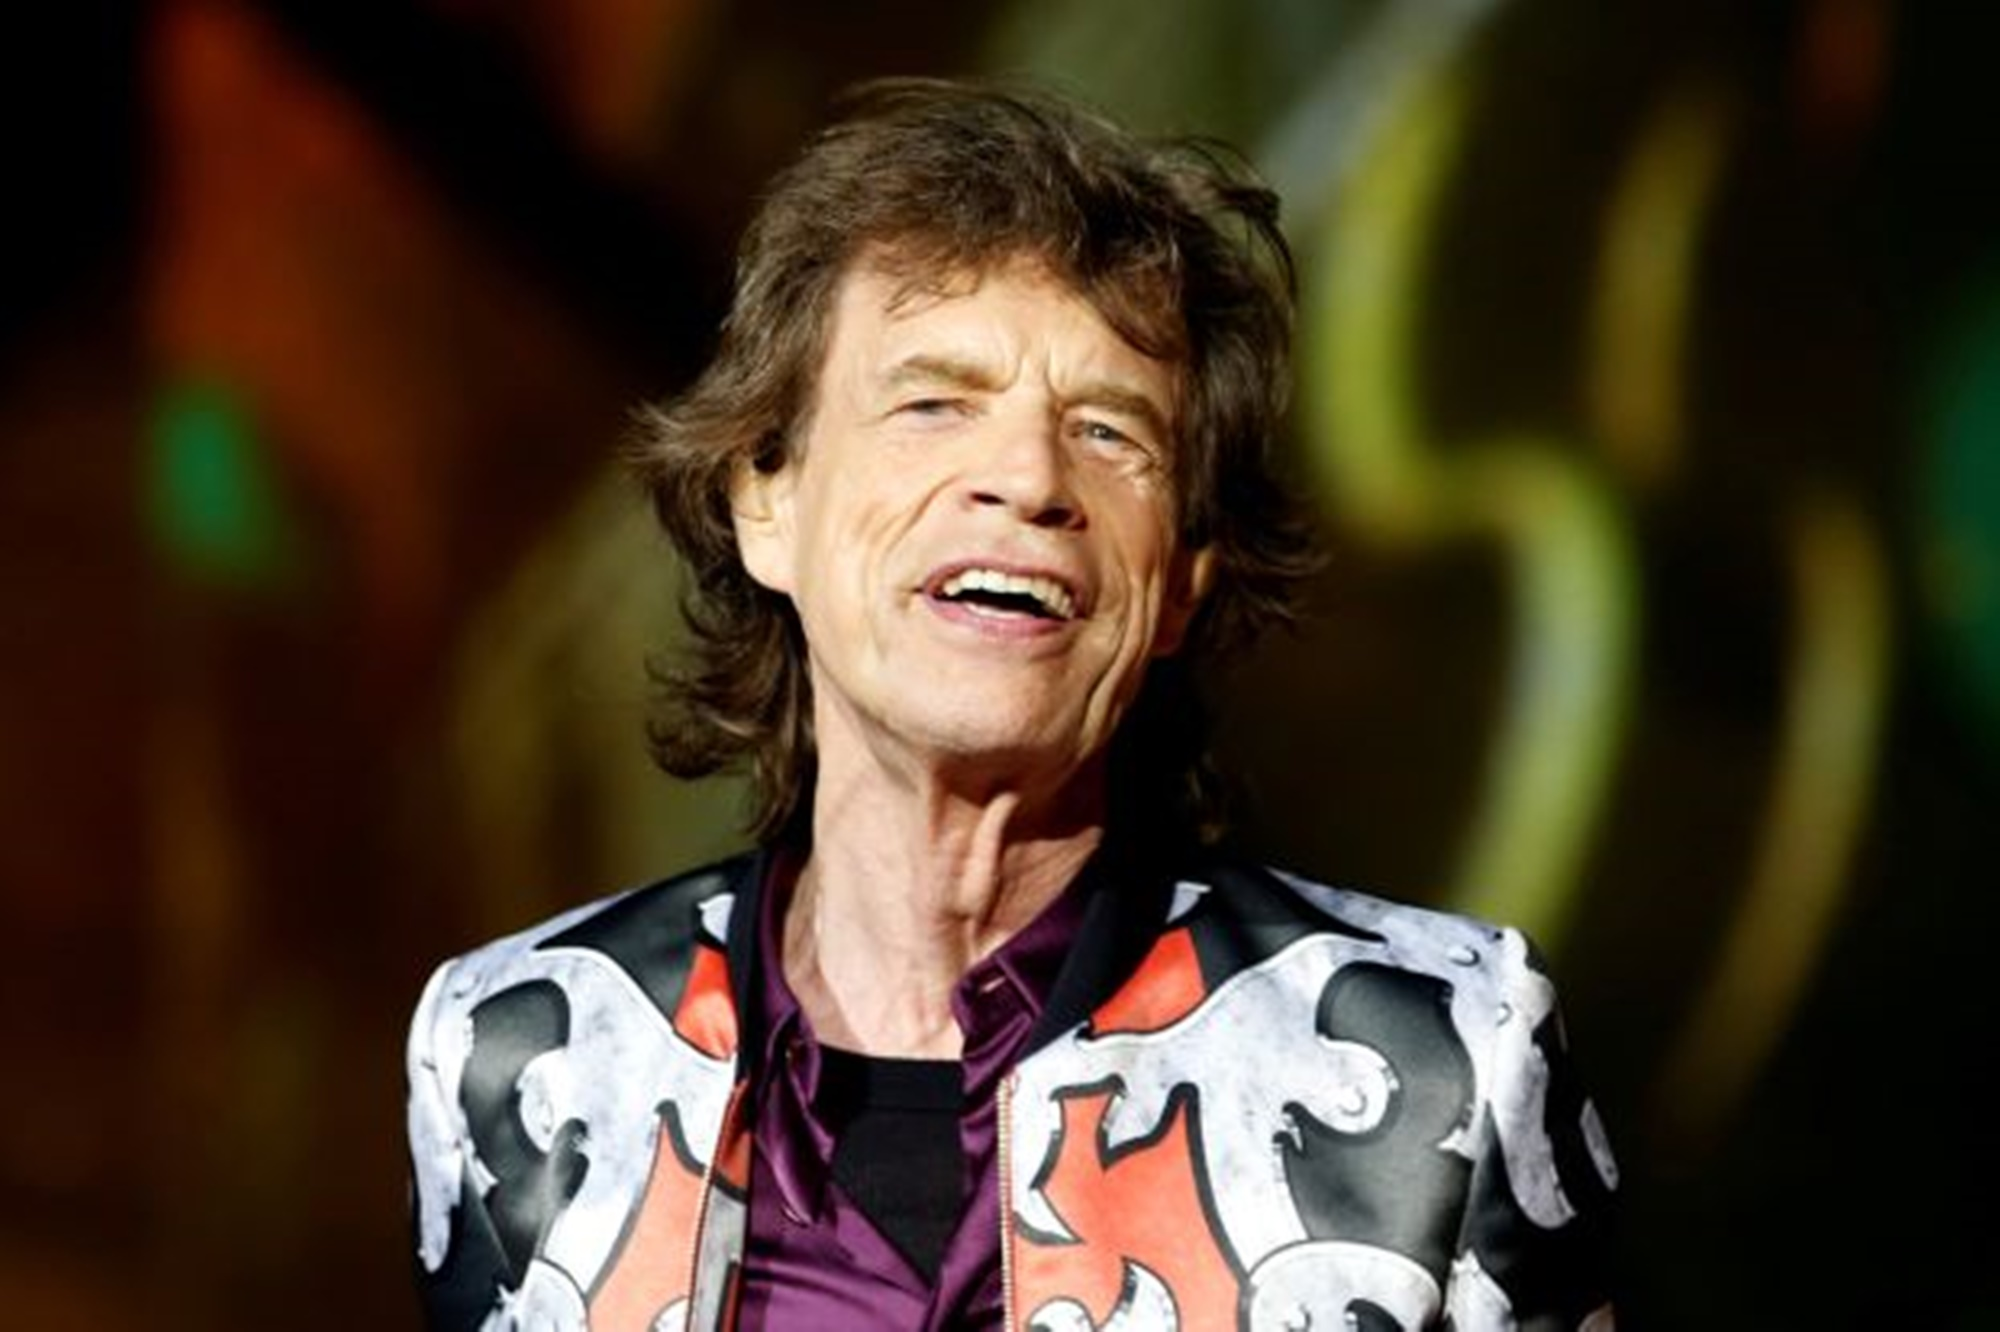 Mick Jagger Rolling Stones Tour